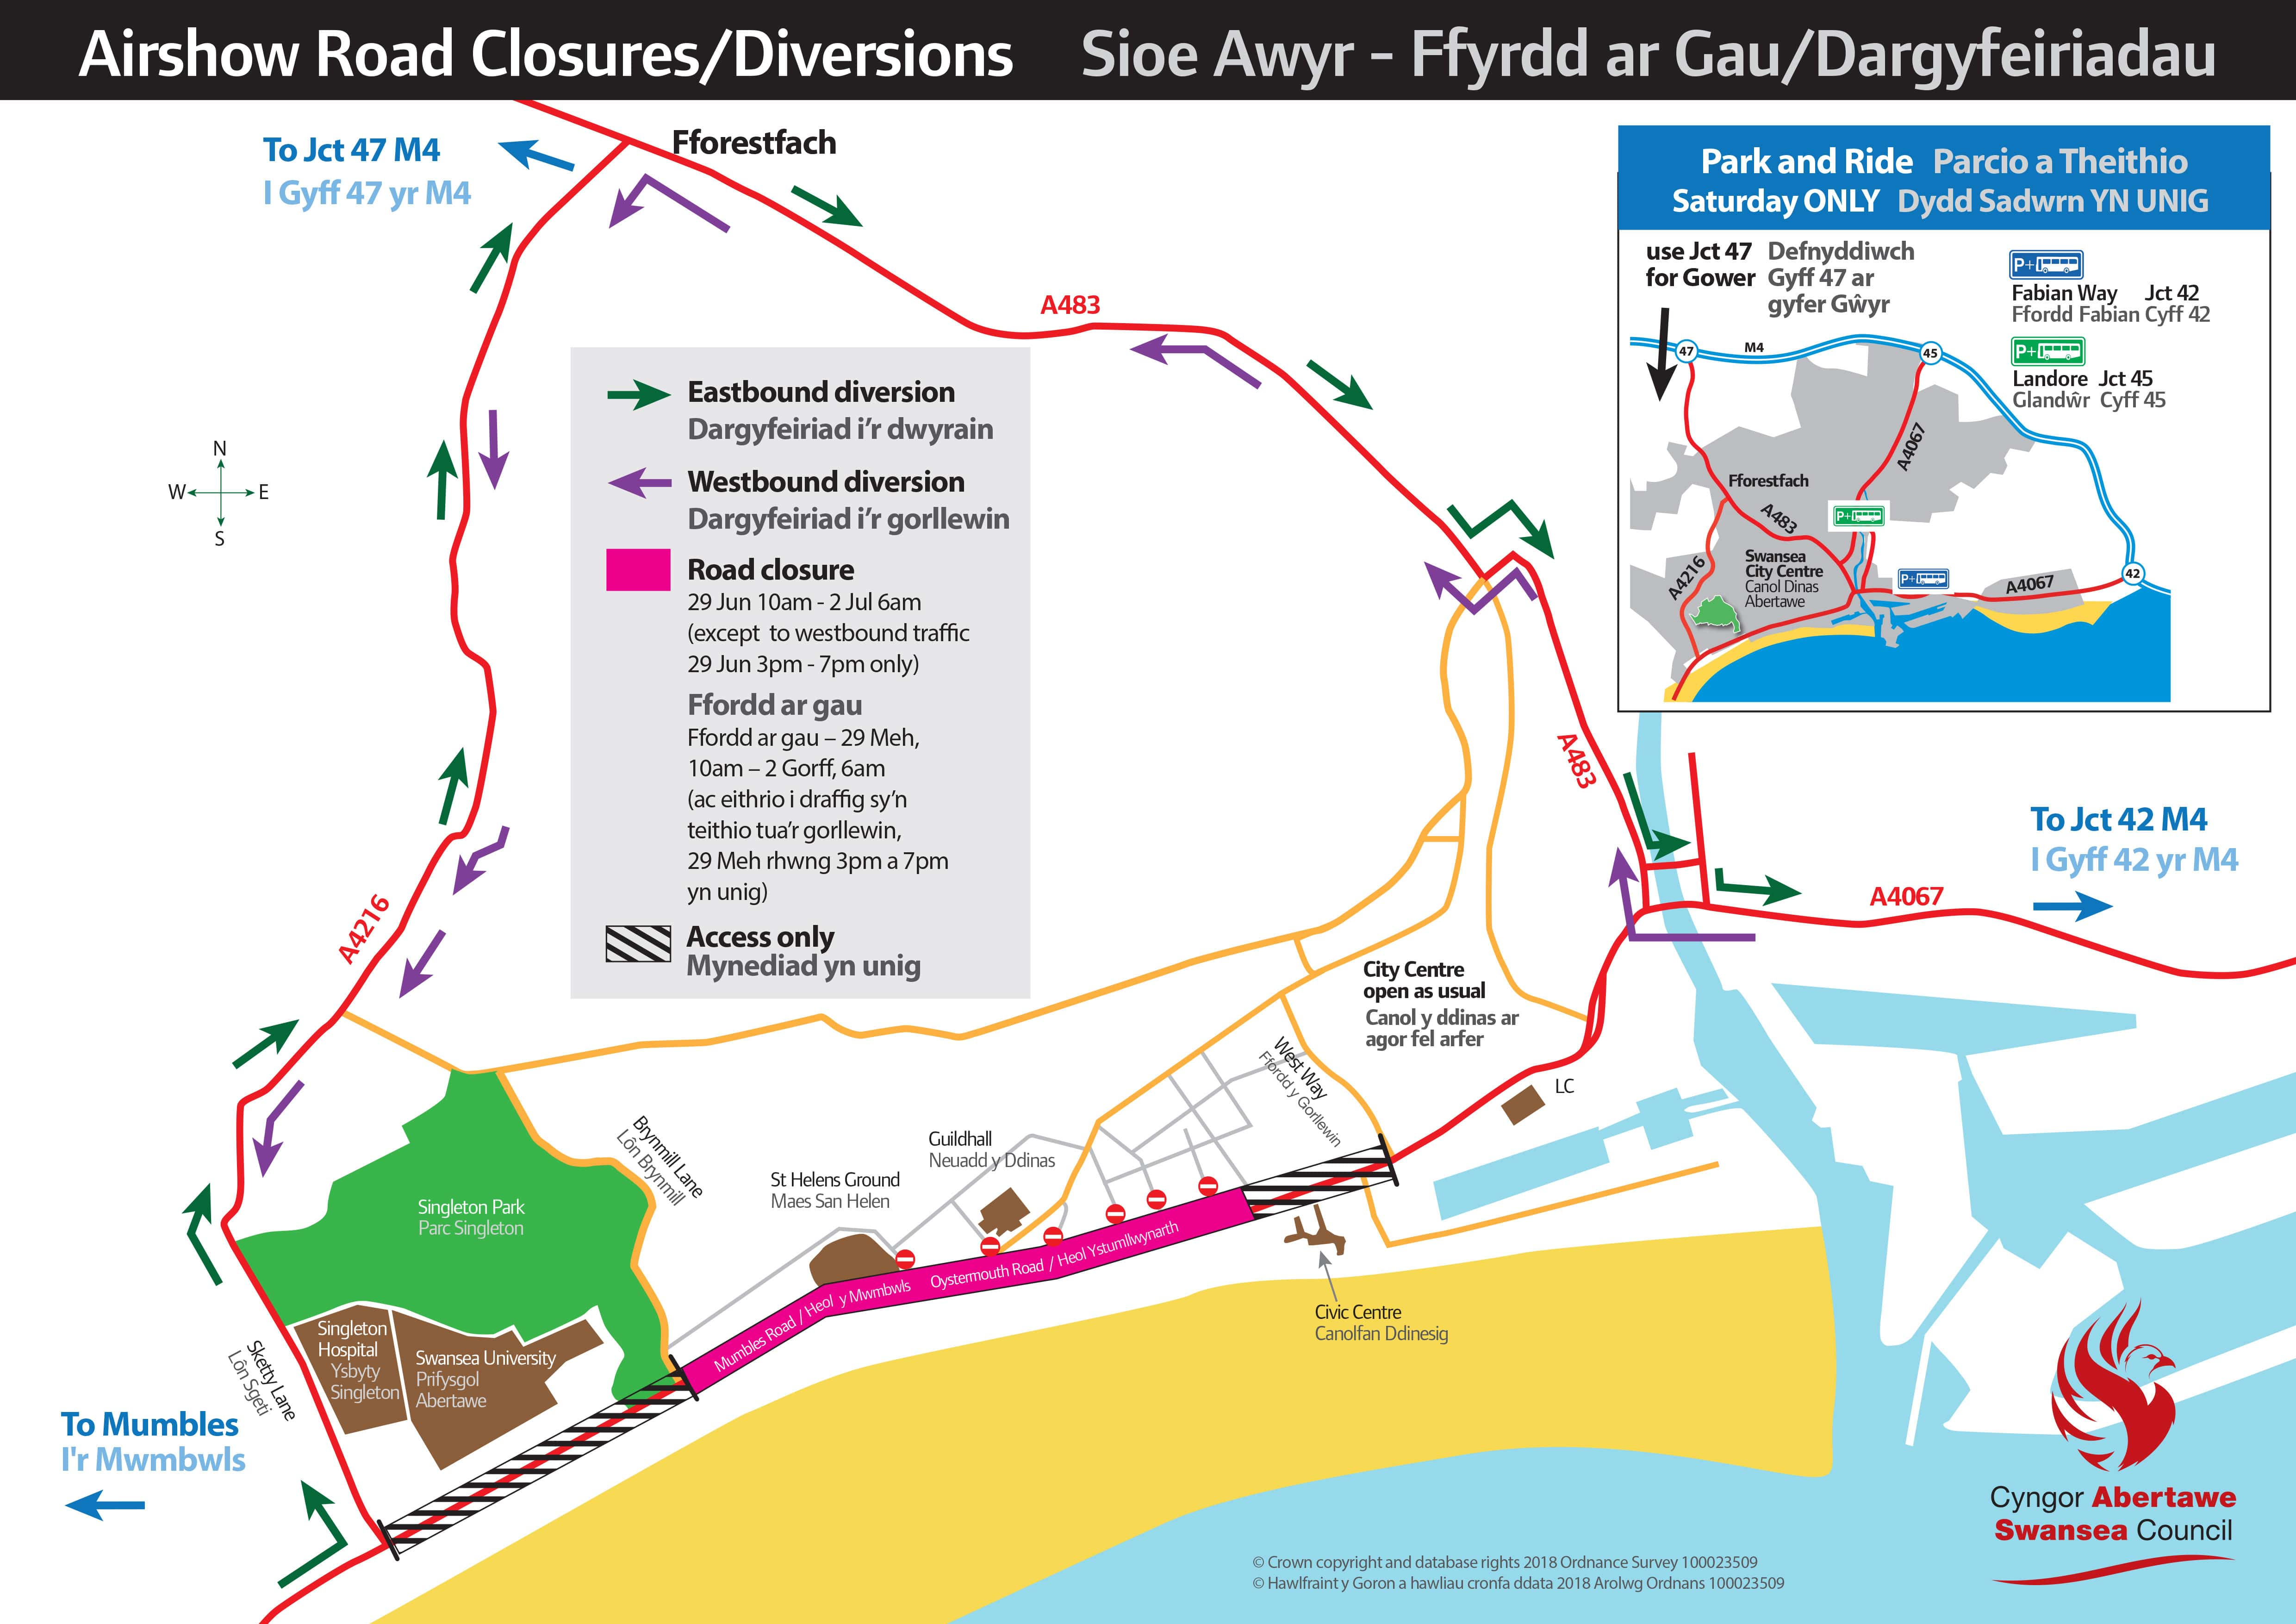 Swansea Airshow Road closures 2018 Final min